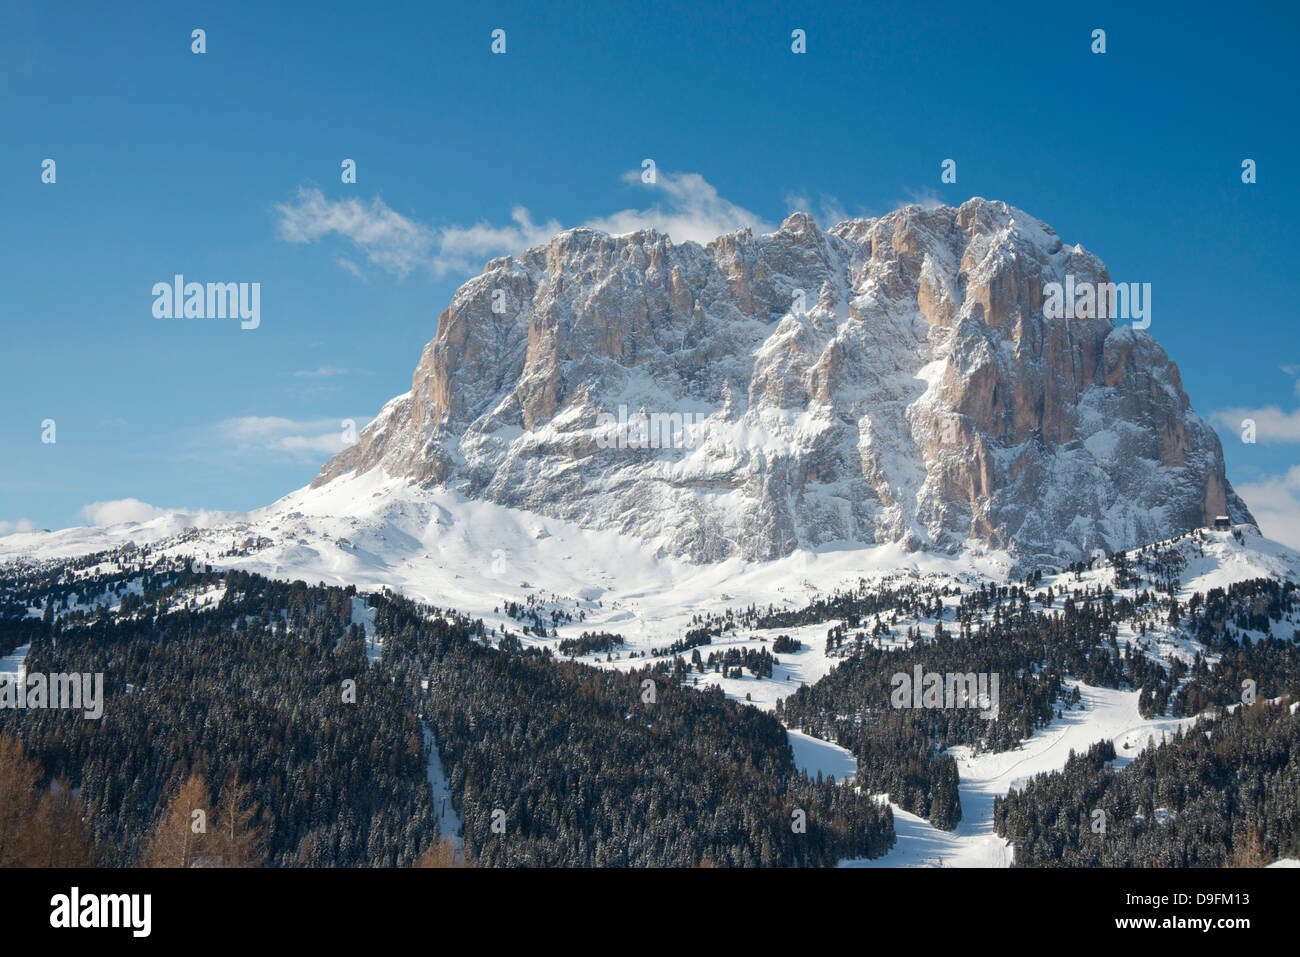 A winter view of Sassolungo Mountain in the Dolomites in the South Tyrol, Italy - Stock Image